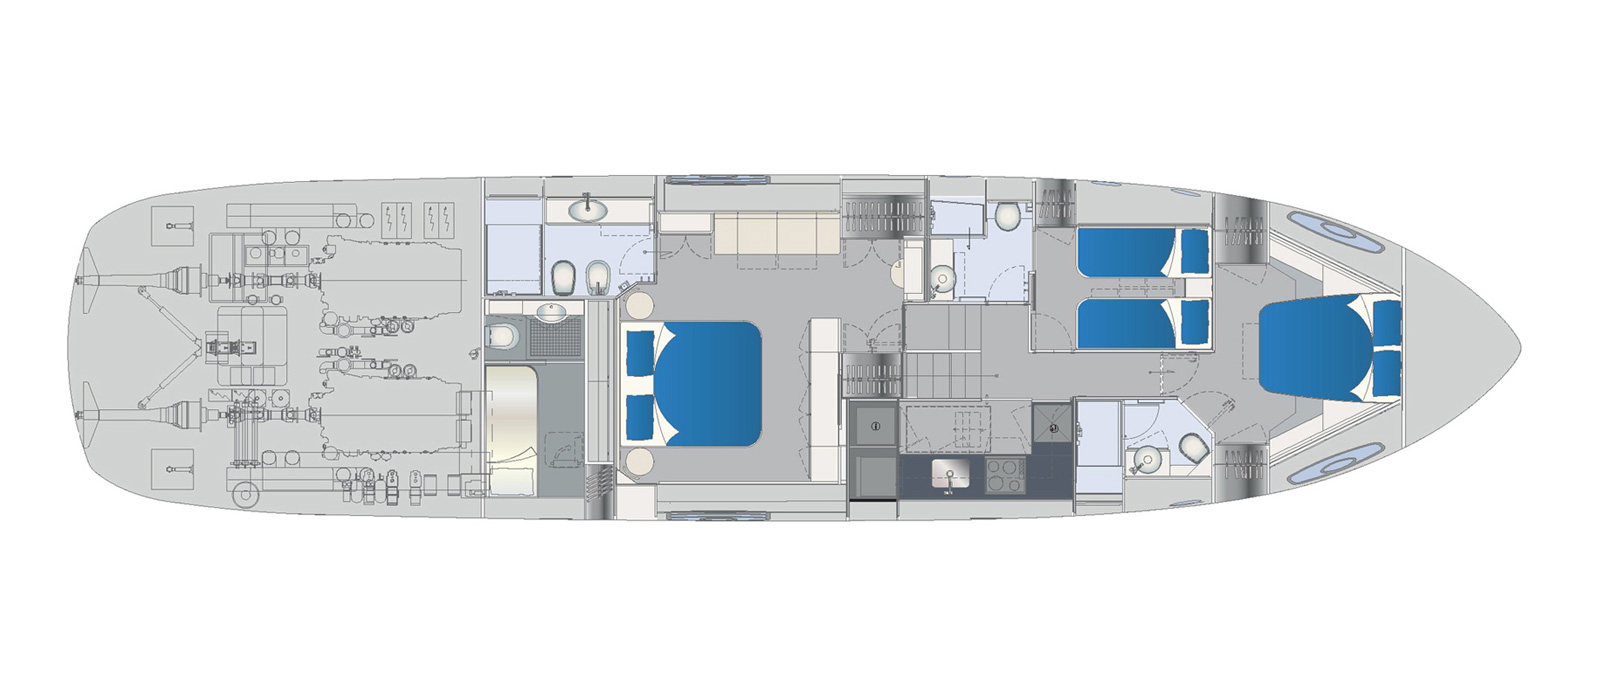 Pershing 70 - Ritmo De Vida - Lower Deck